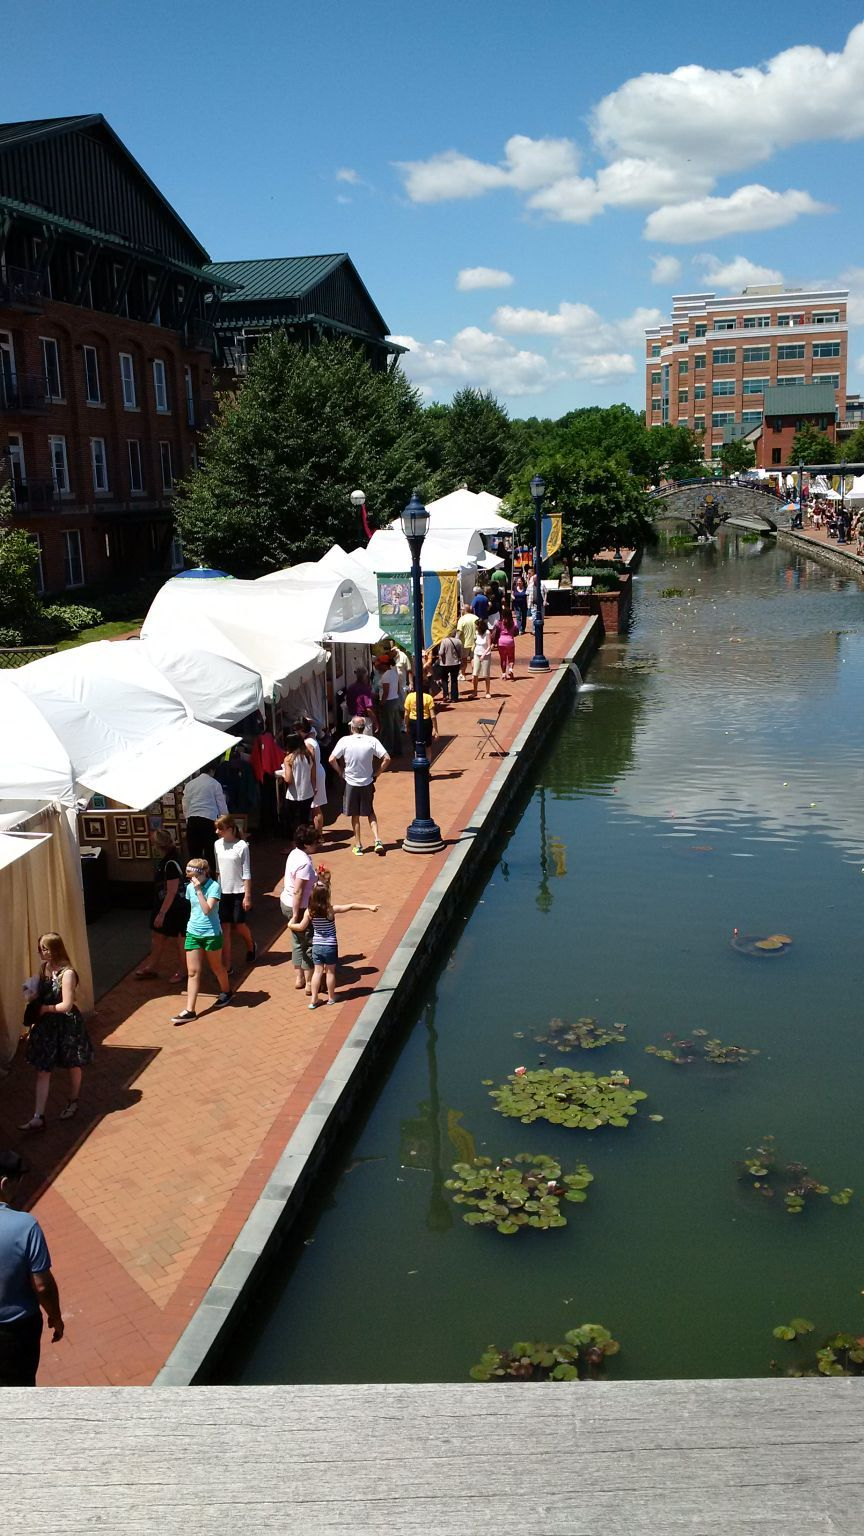 Frederick Festival of the Arts brings artists together